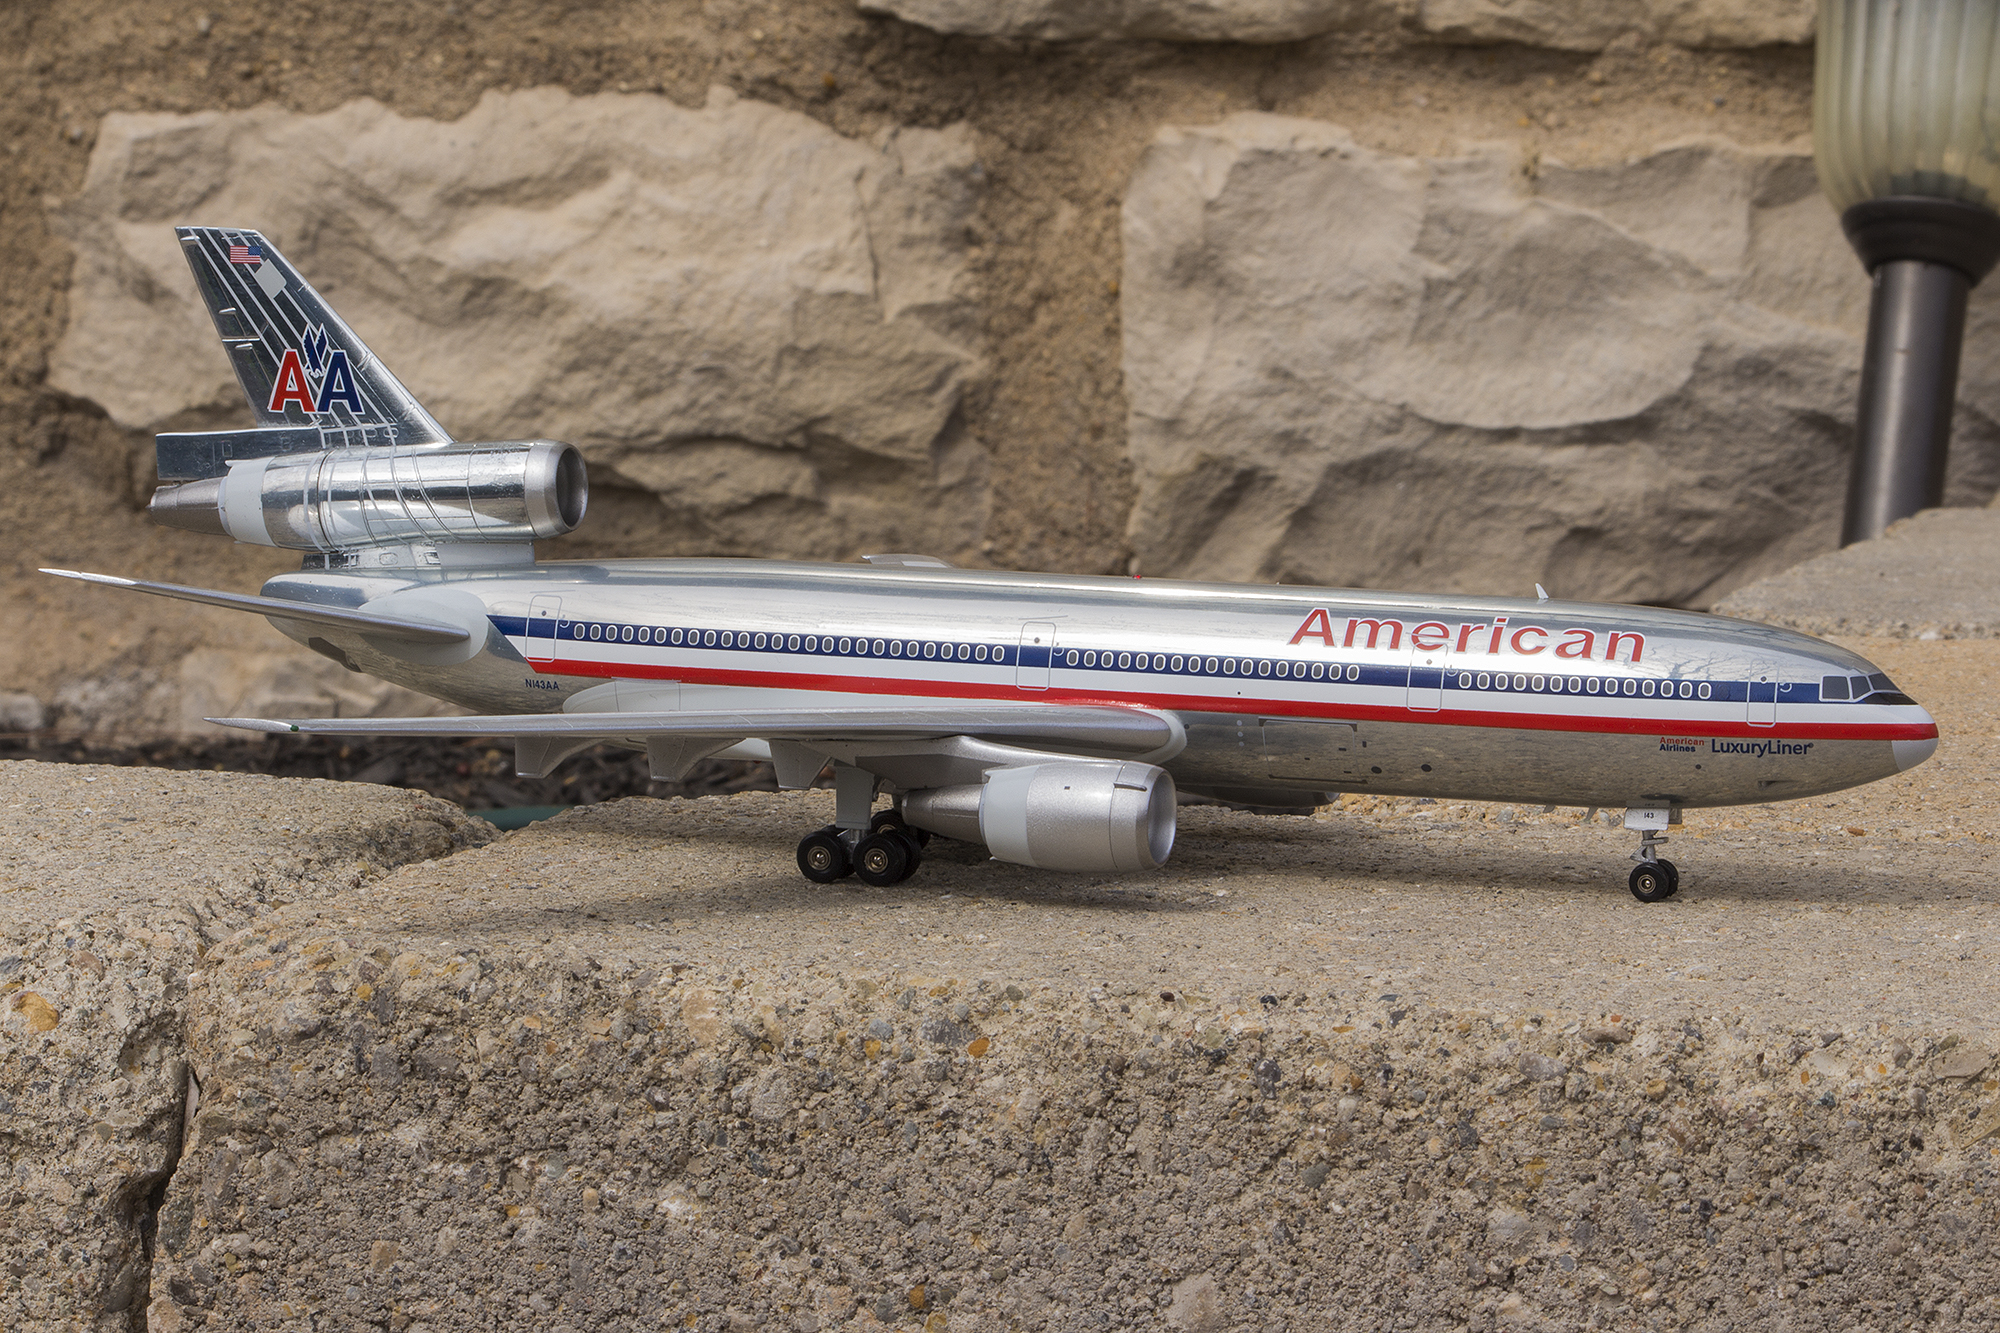 case study american air flight 191 O'melveny secured an appellate win for american airlines in a case concerning the integration of flight attendant seniority lists.